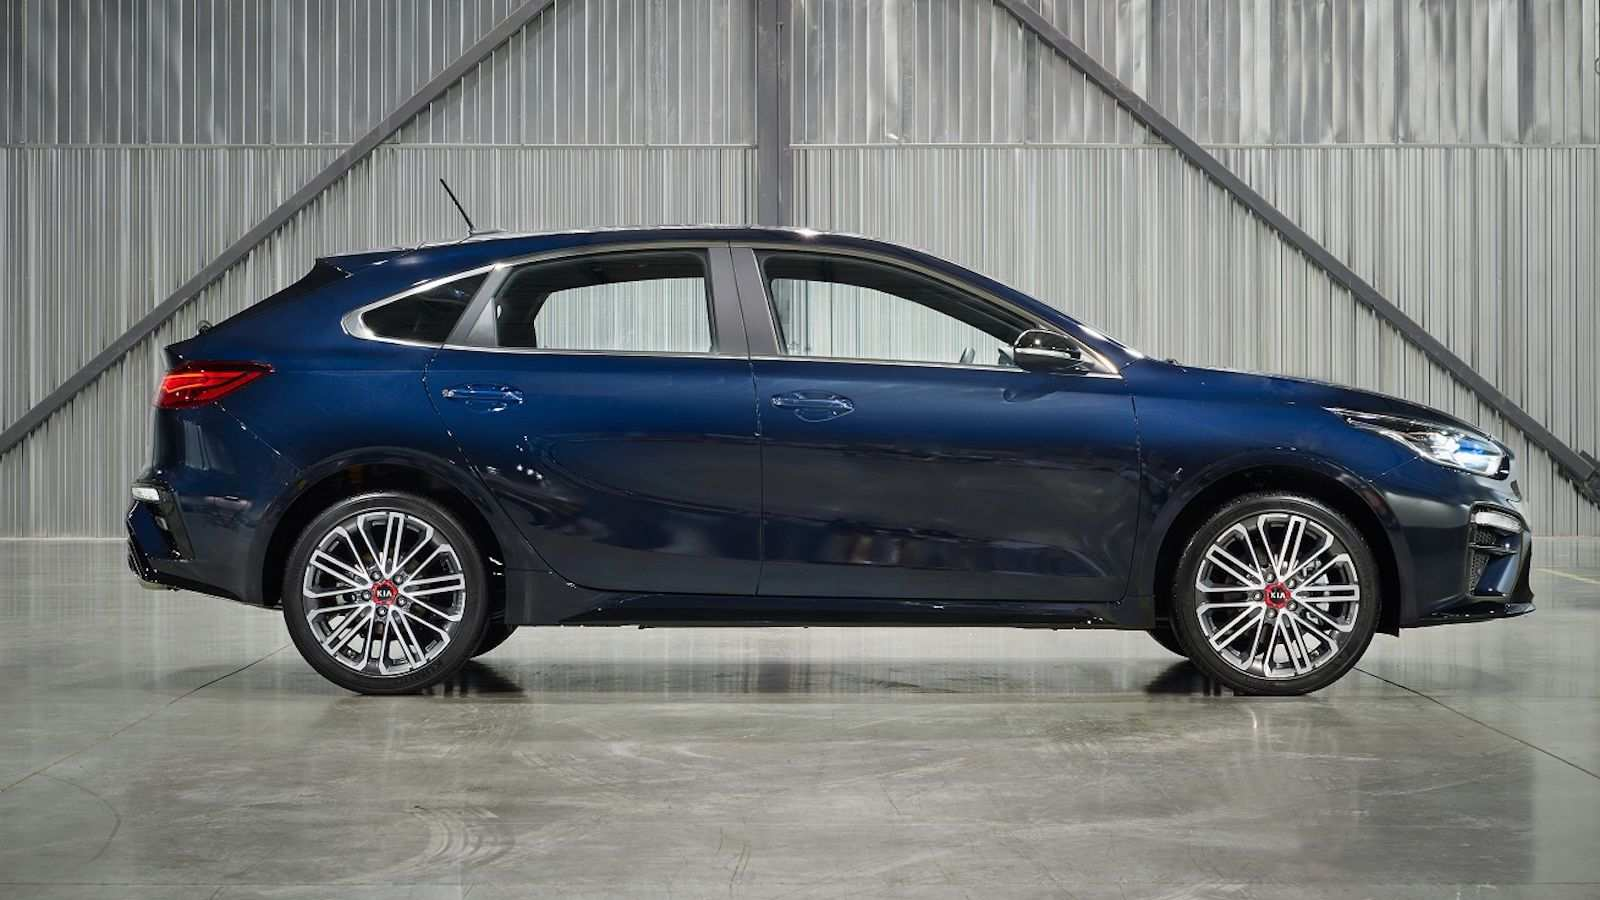 50 Concept of Kia Forte 5 Gt 2020 Price with Kia Forte 5 Gt 2020